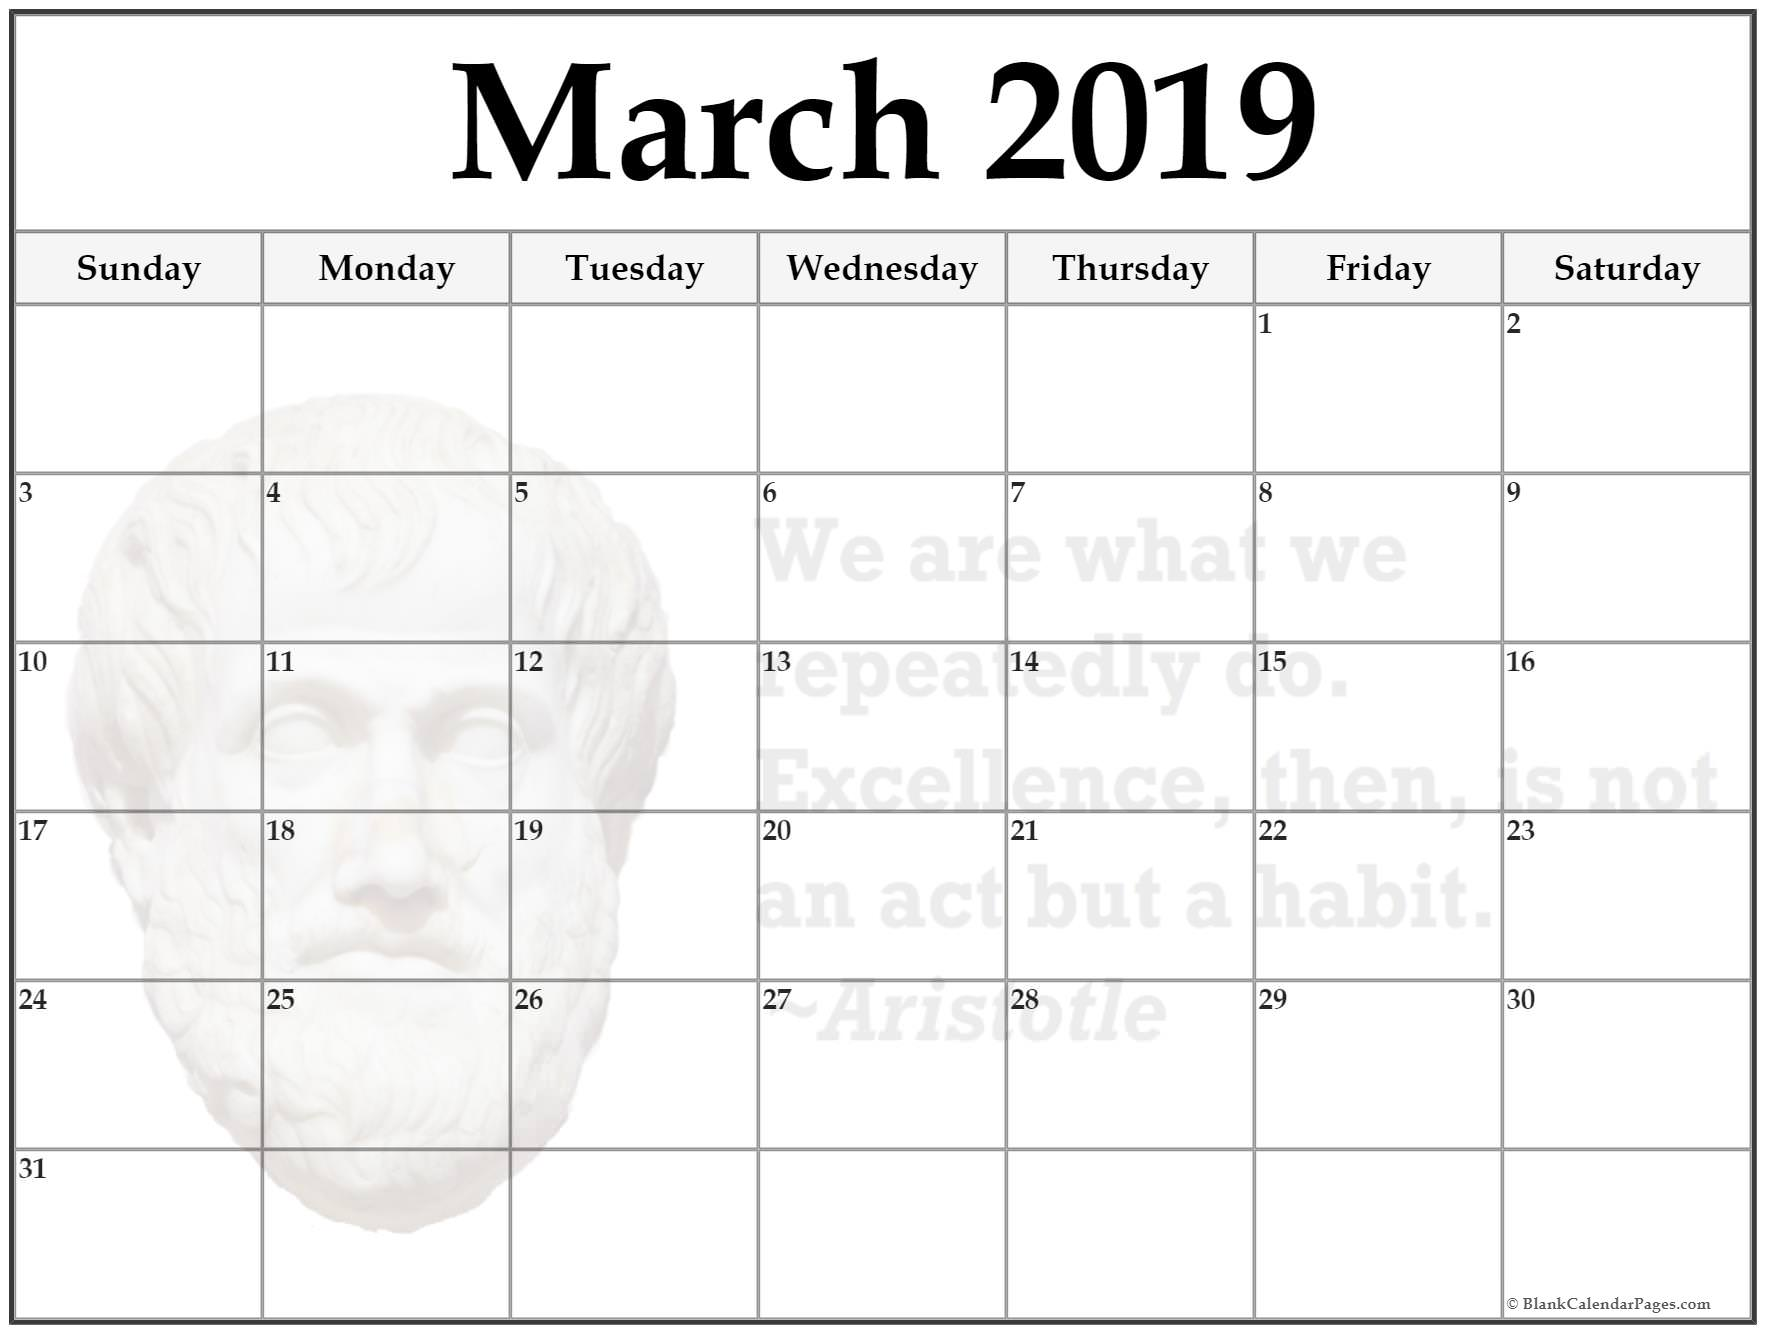 image about Free Printable Blank Calendars named Cost-free Printable Blank Calendar March 2019 - No cost August 2019